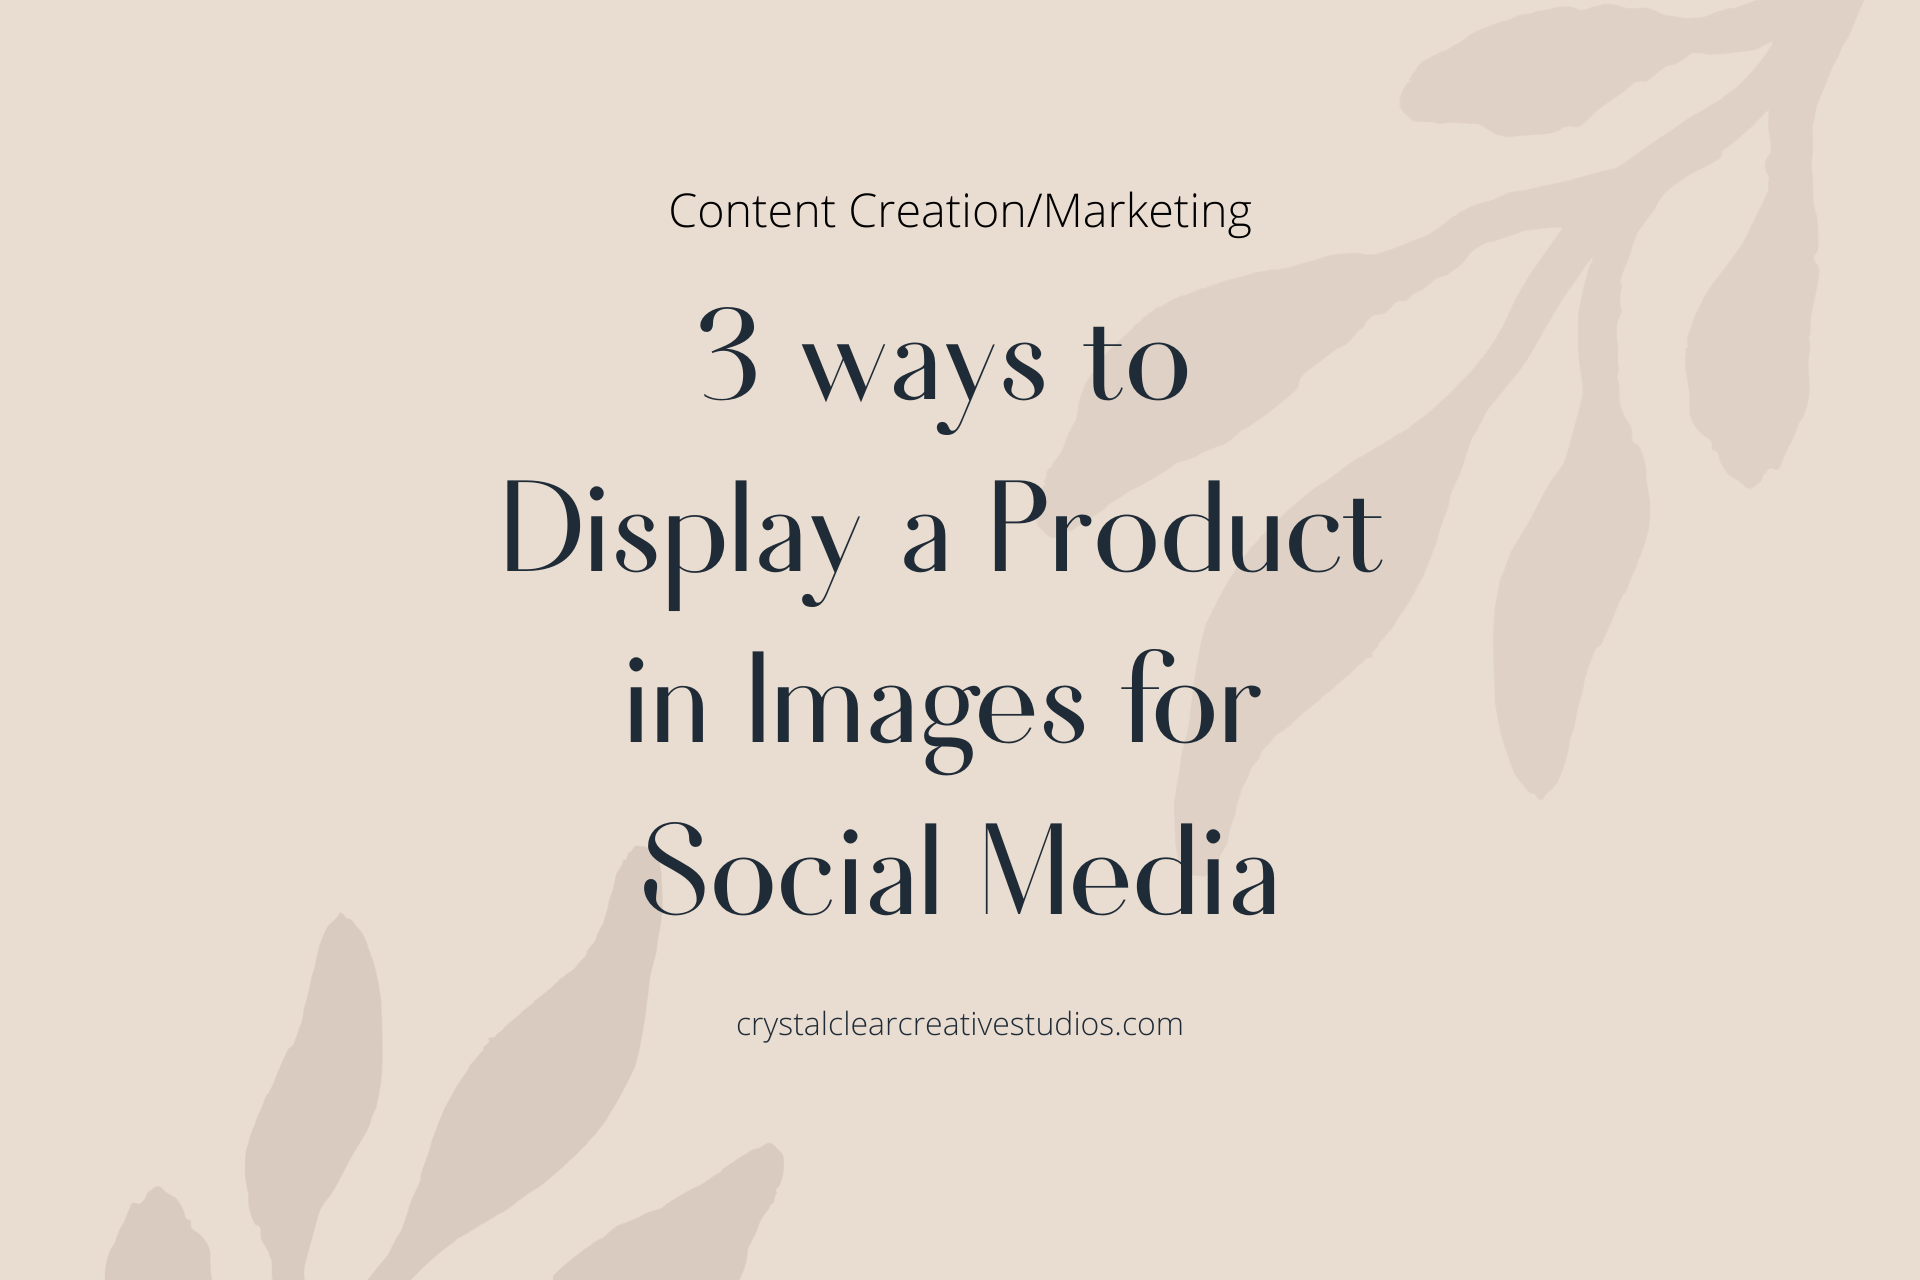 3 Ways to Display a Product in Images for Social Media